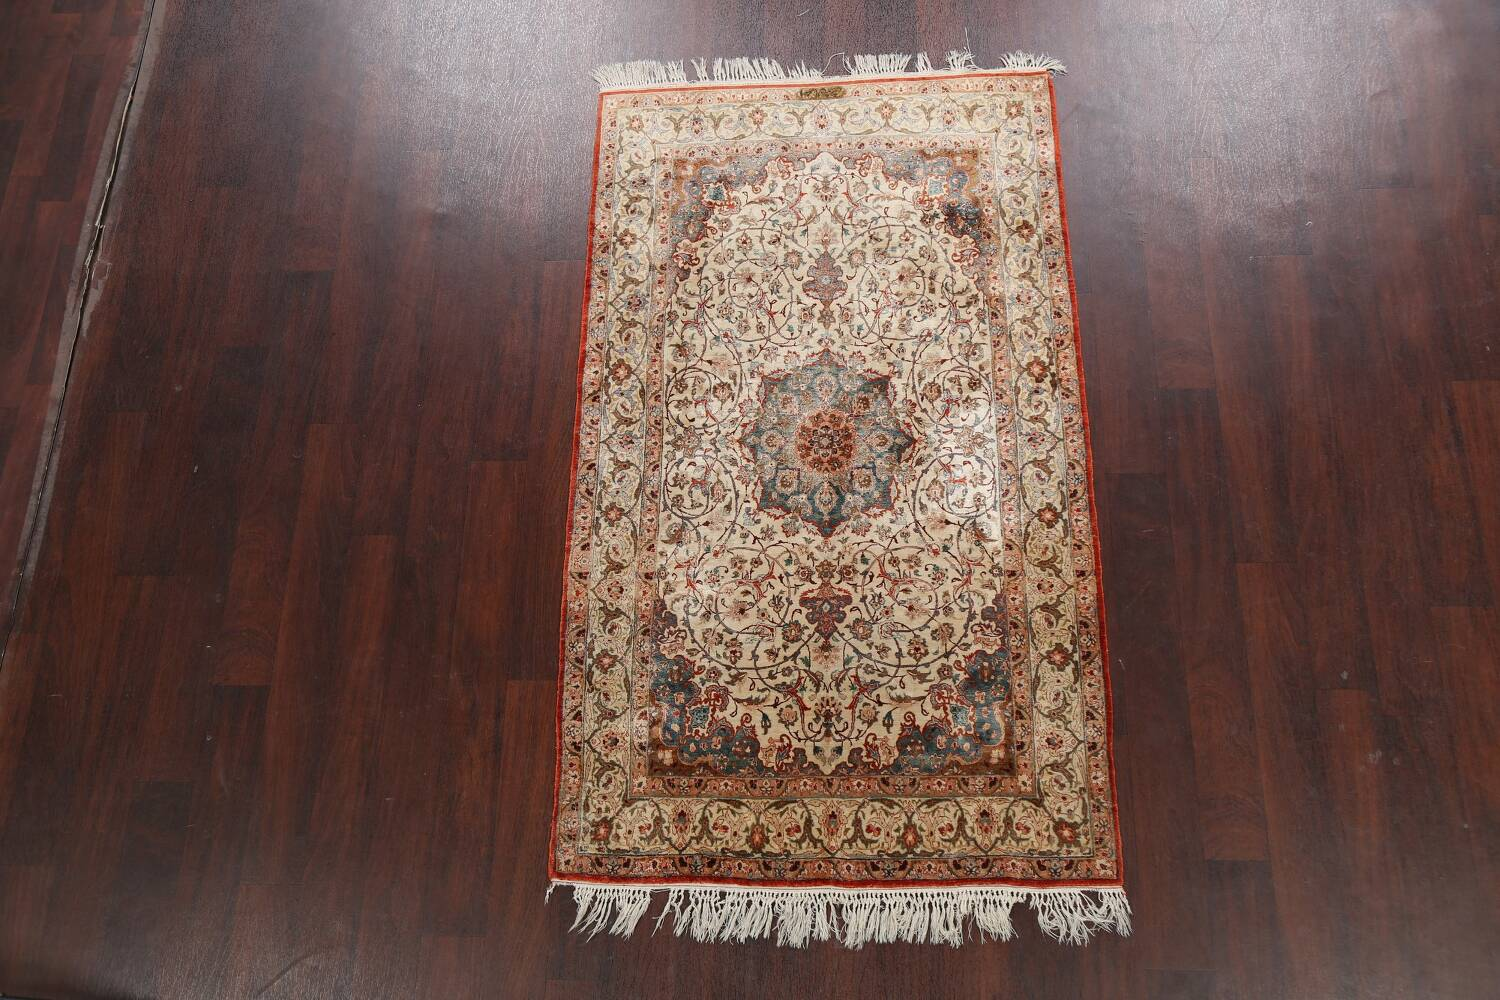 Antique 100% Vegetable Dye Isfahan Persian Area Rug 4x6 image 2